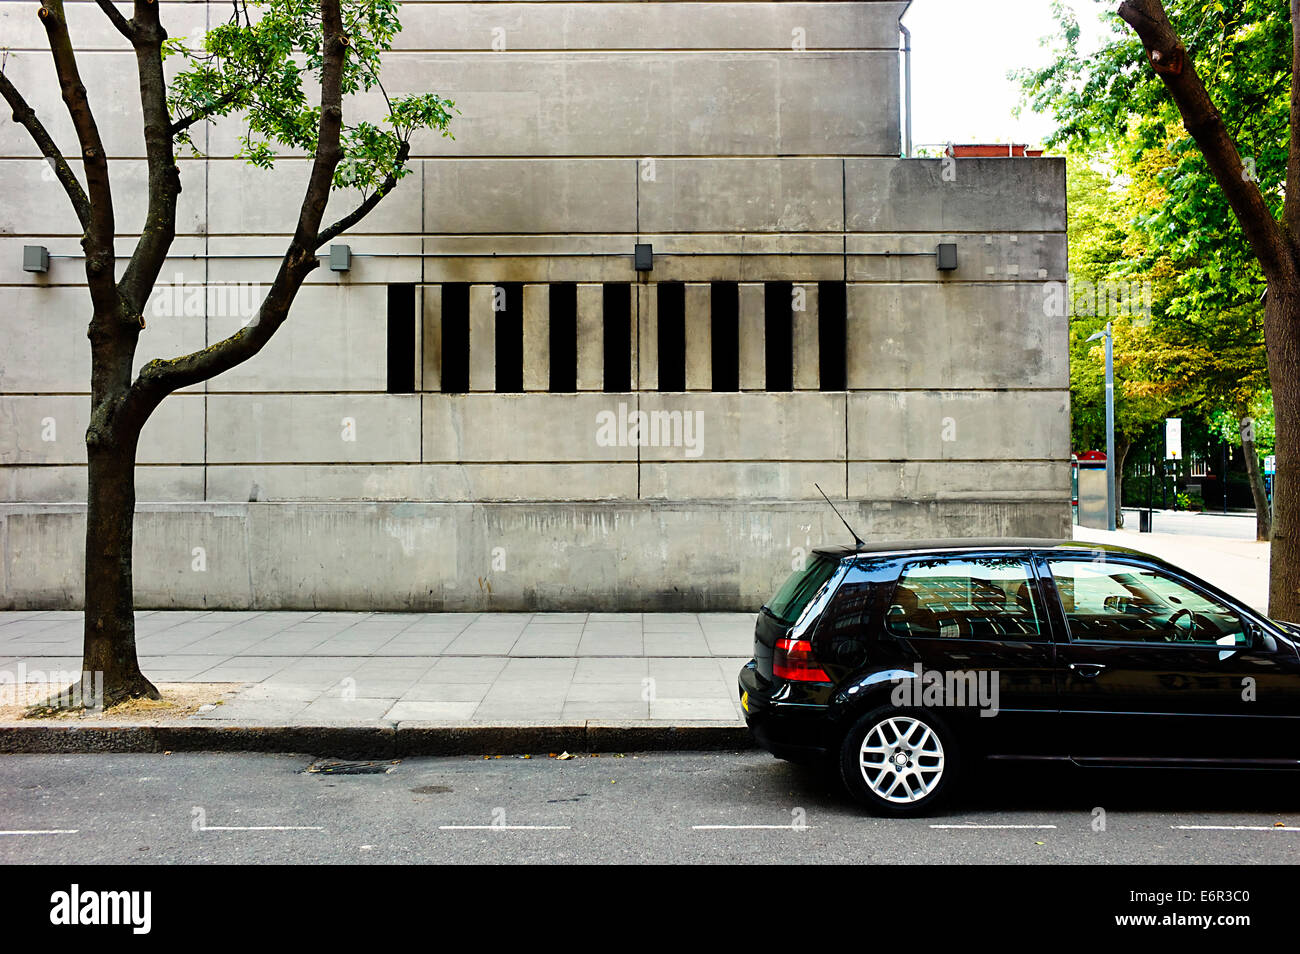 Concrete building window and parked car - Stock Image